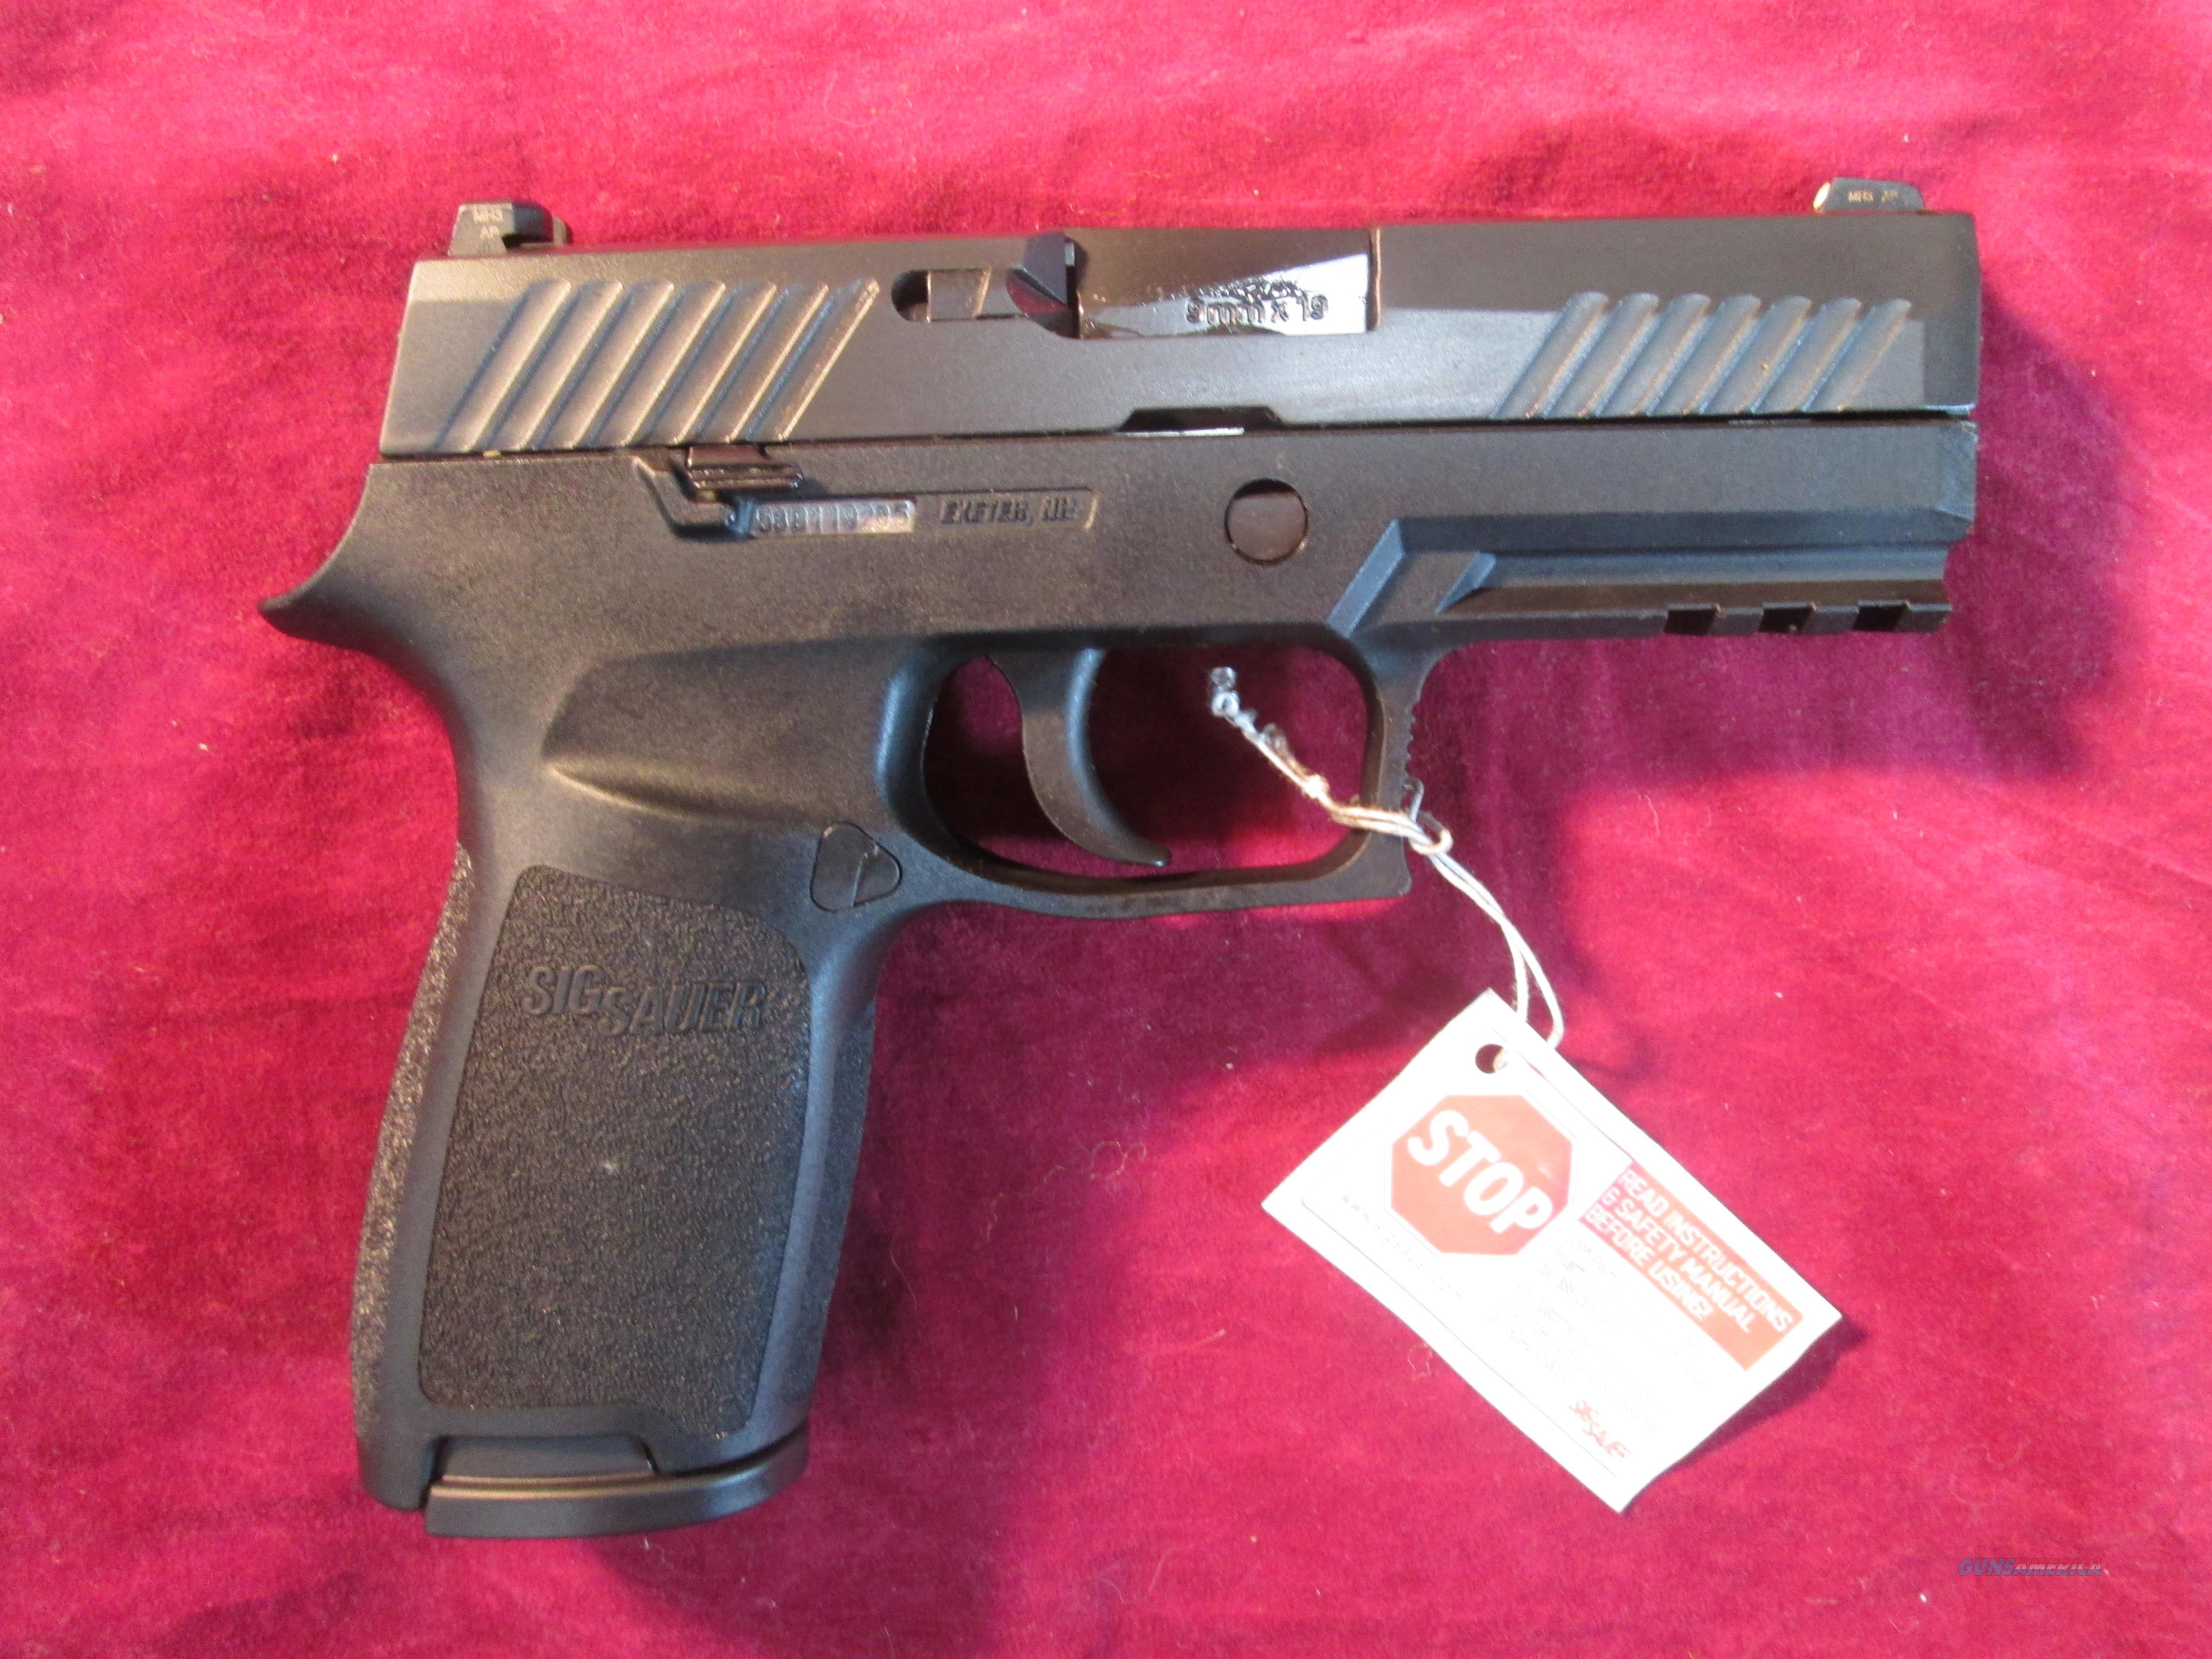 SIG SAUER P320 CARRY 9MM STRIKER FIRED PISTOL W/ NIGHT SIGHTS NEW (320CA-9-BSS)    Guns > Pistols > Sig - Sauer/Sigarms Pistols > P320